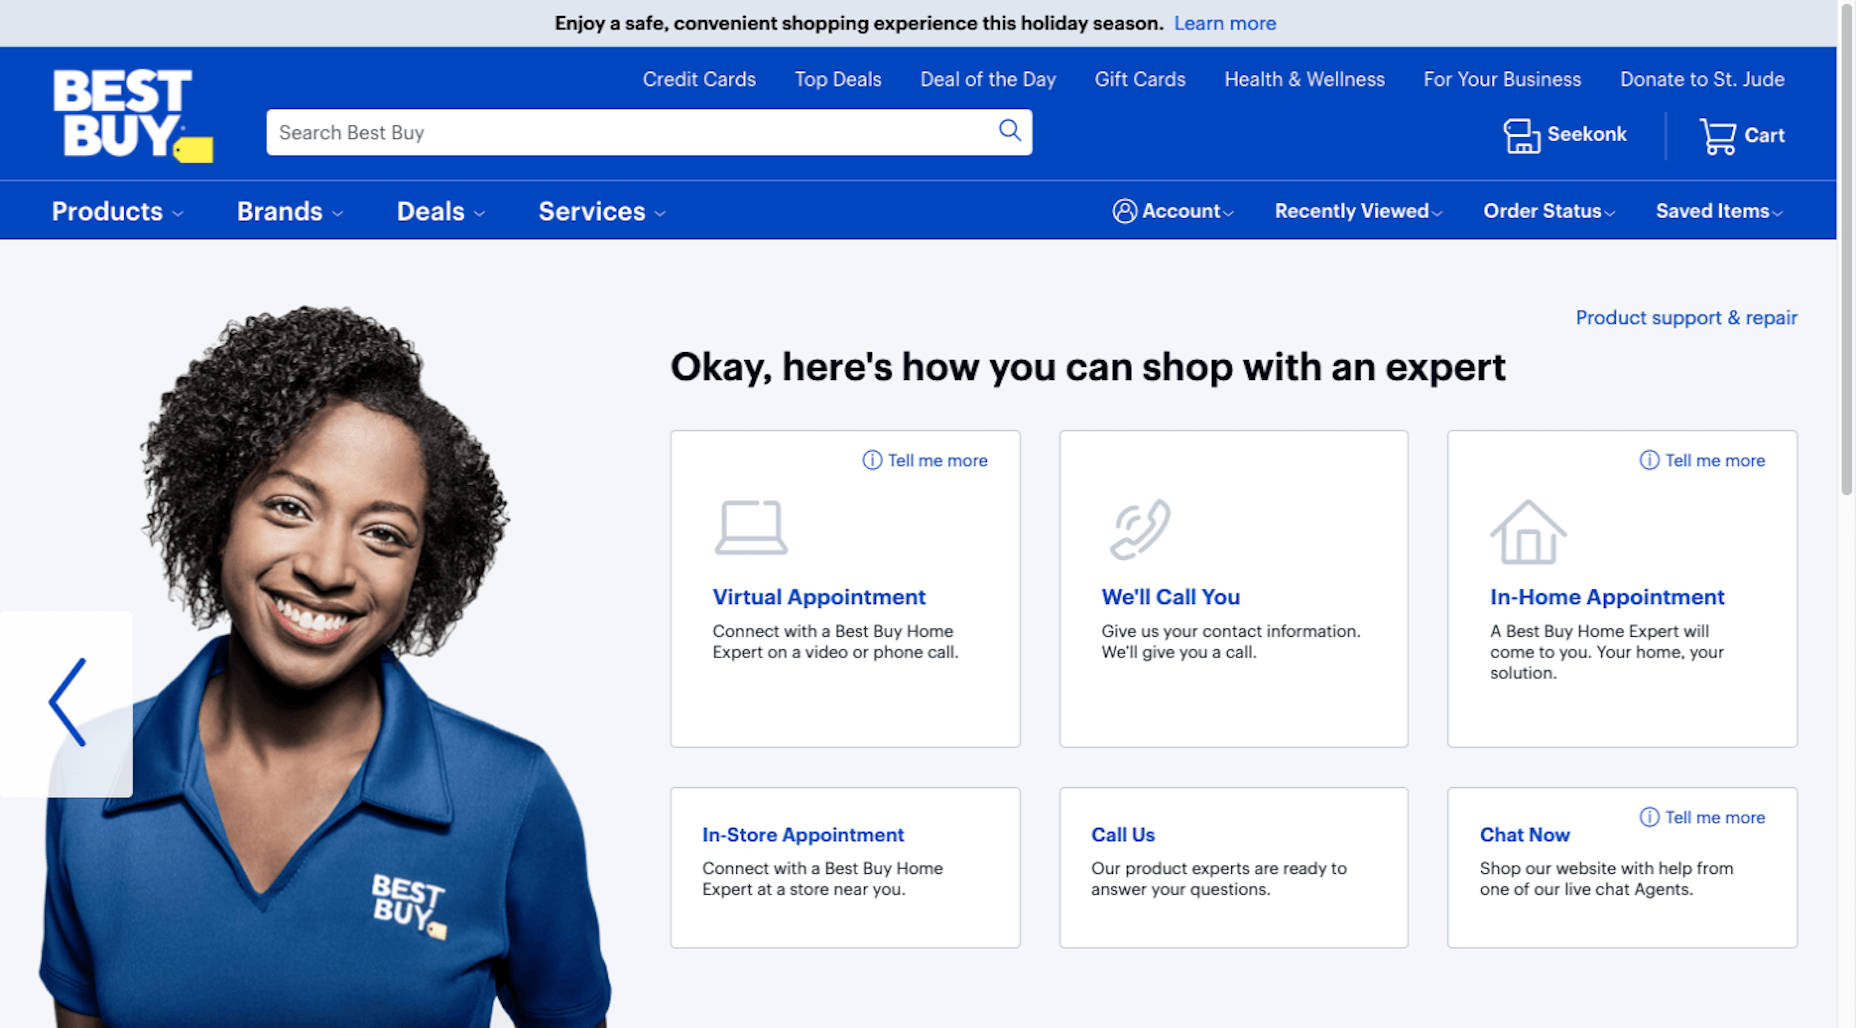 Best Buy customers choose how they want to work with shopping expert